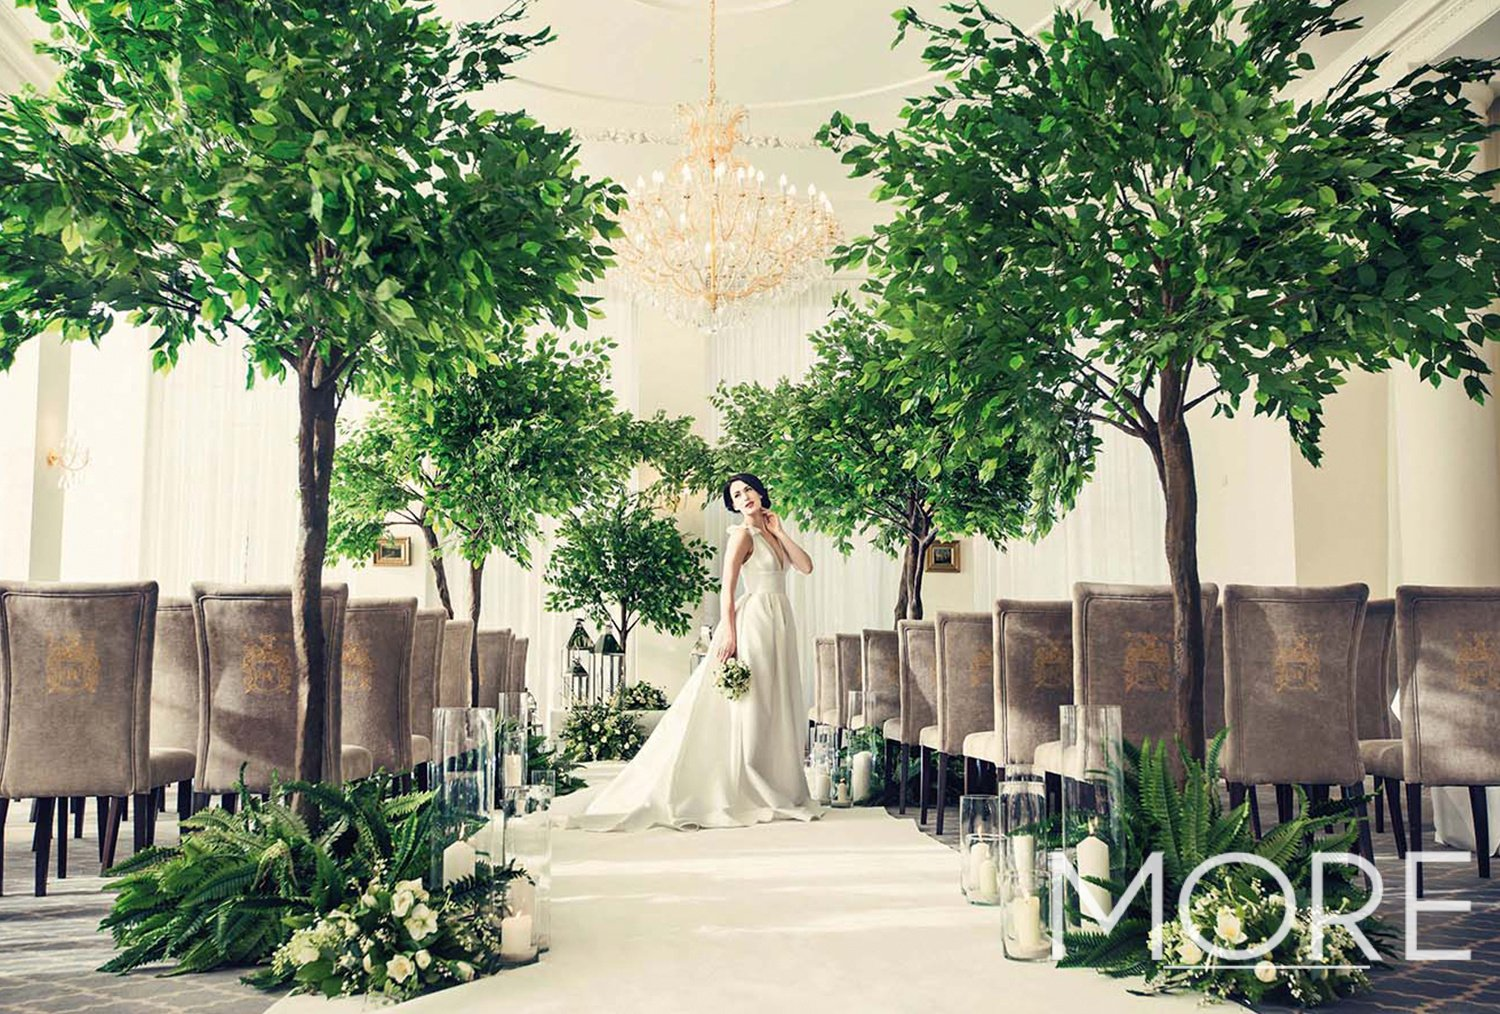 Rushton Hall wedding aisle dressing with artificial ficus trees, white carpet, glass vases and chrome lanterns